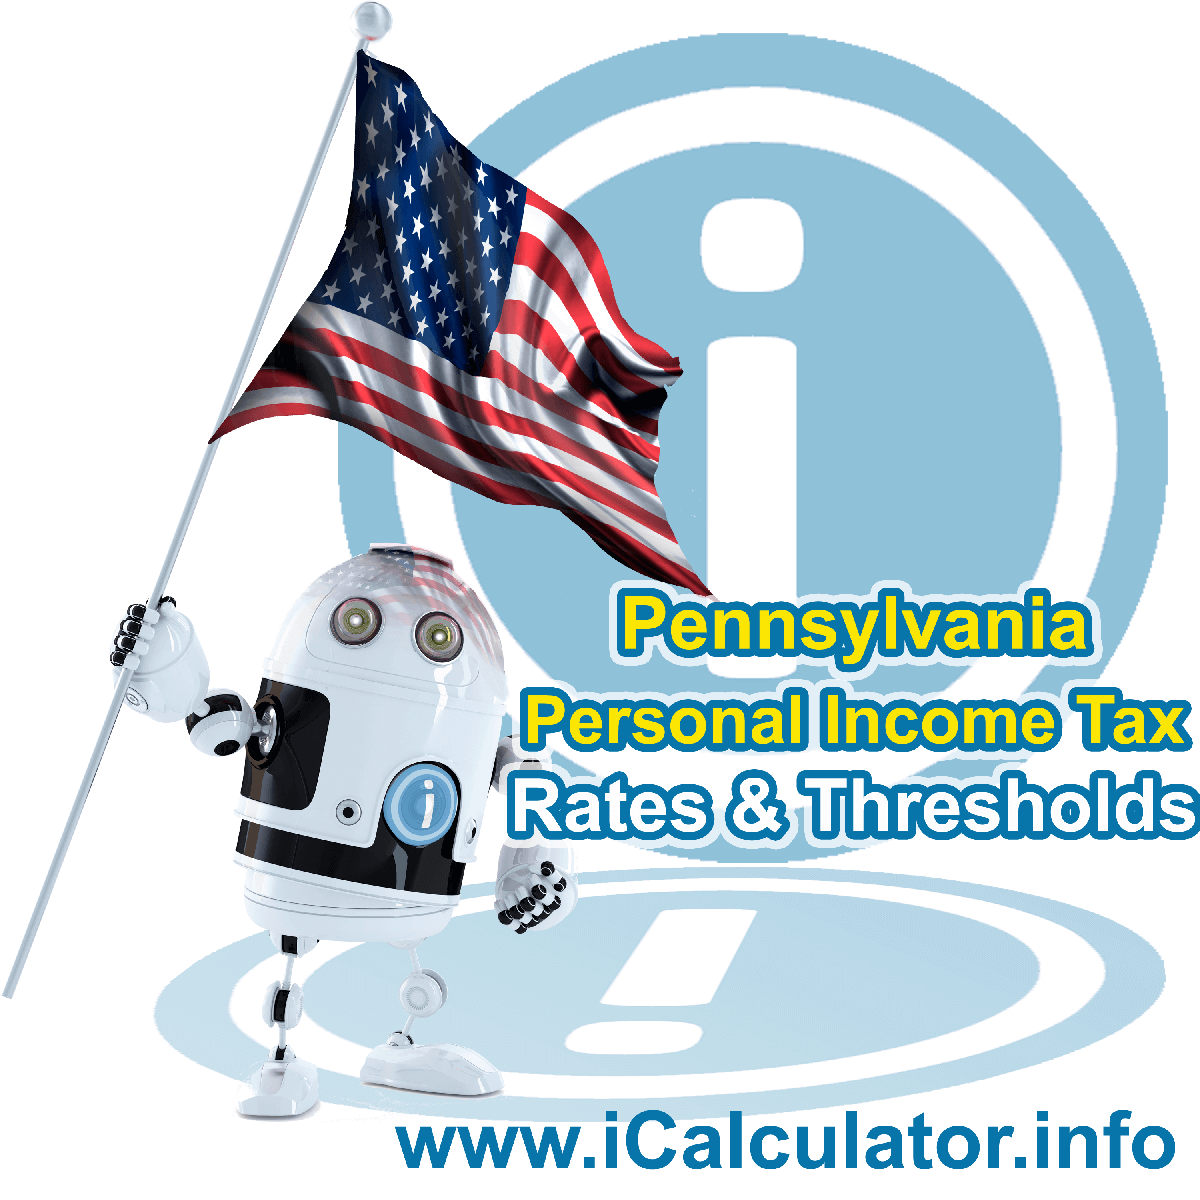 Pennsylvania State Tax Tables 2020. This image displays details of the Pennsylvania State Tax Tables for the 2020 tax return year which is provided in support of the 2020 US Tax Calculator